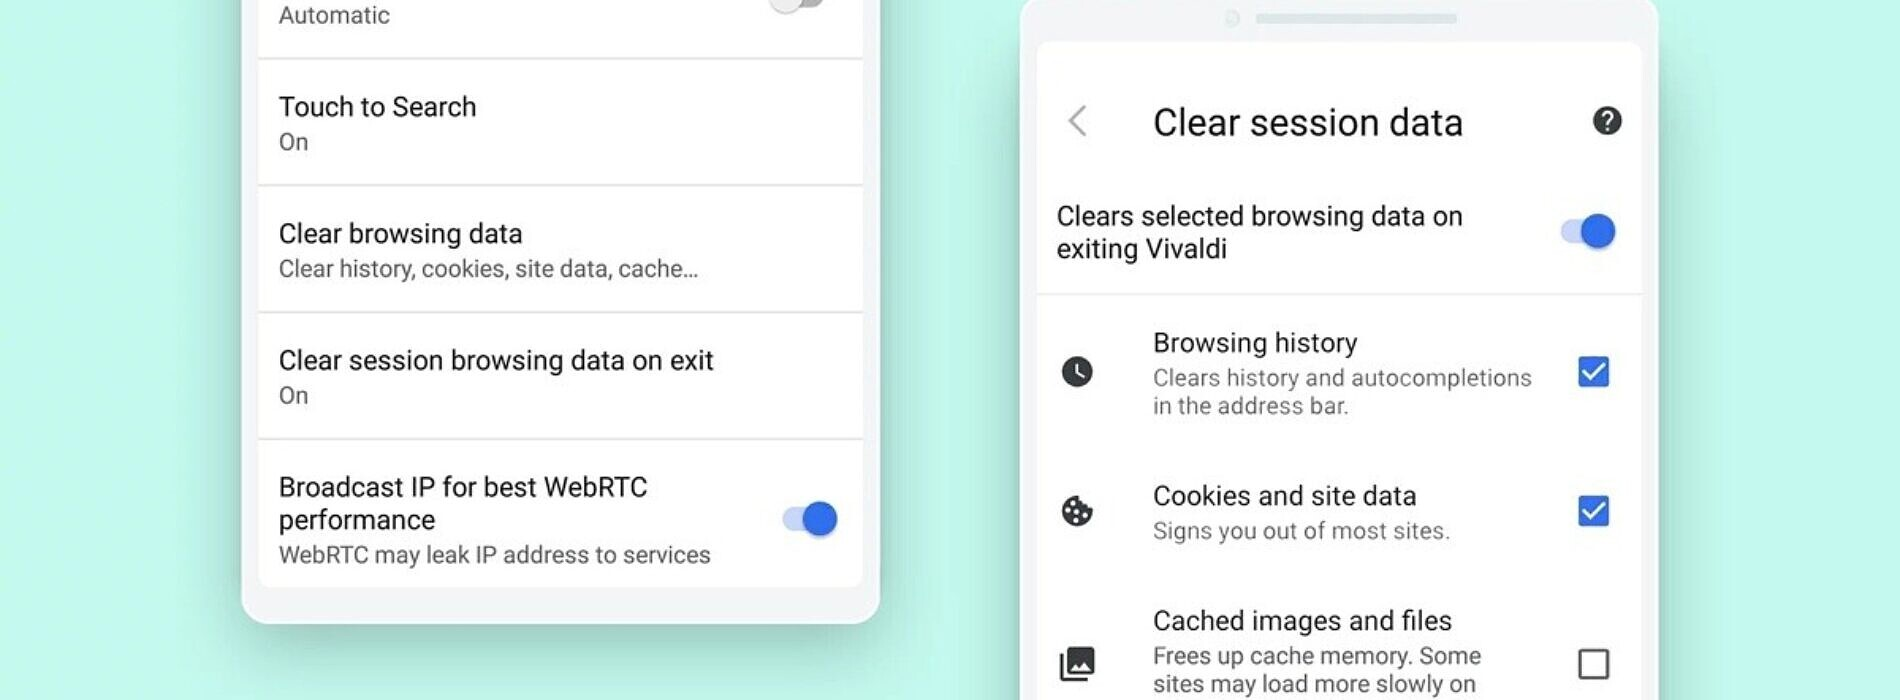 Vivaldi Browser for Android adds an option to clear browsing data on exit